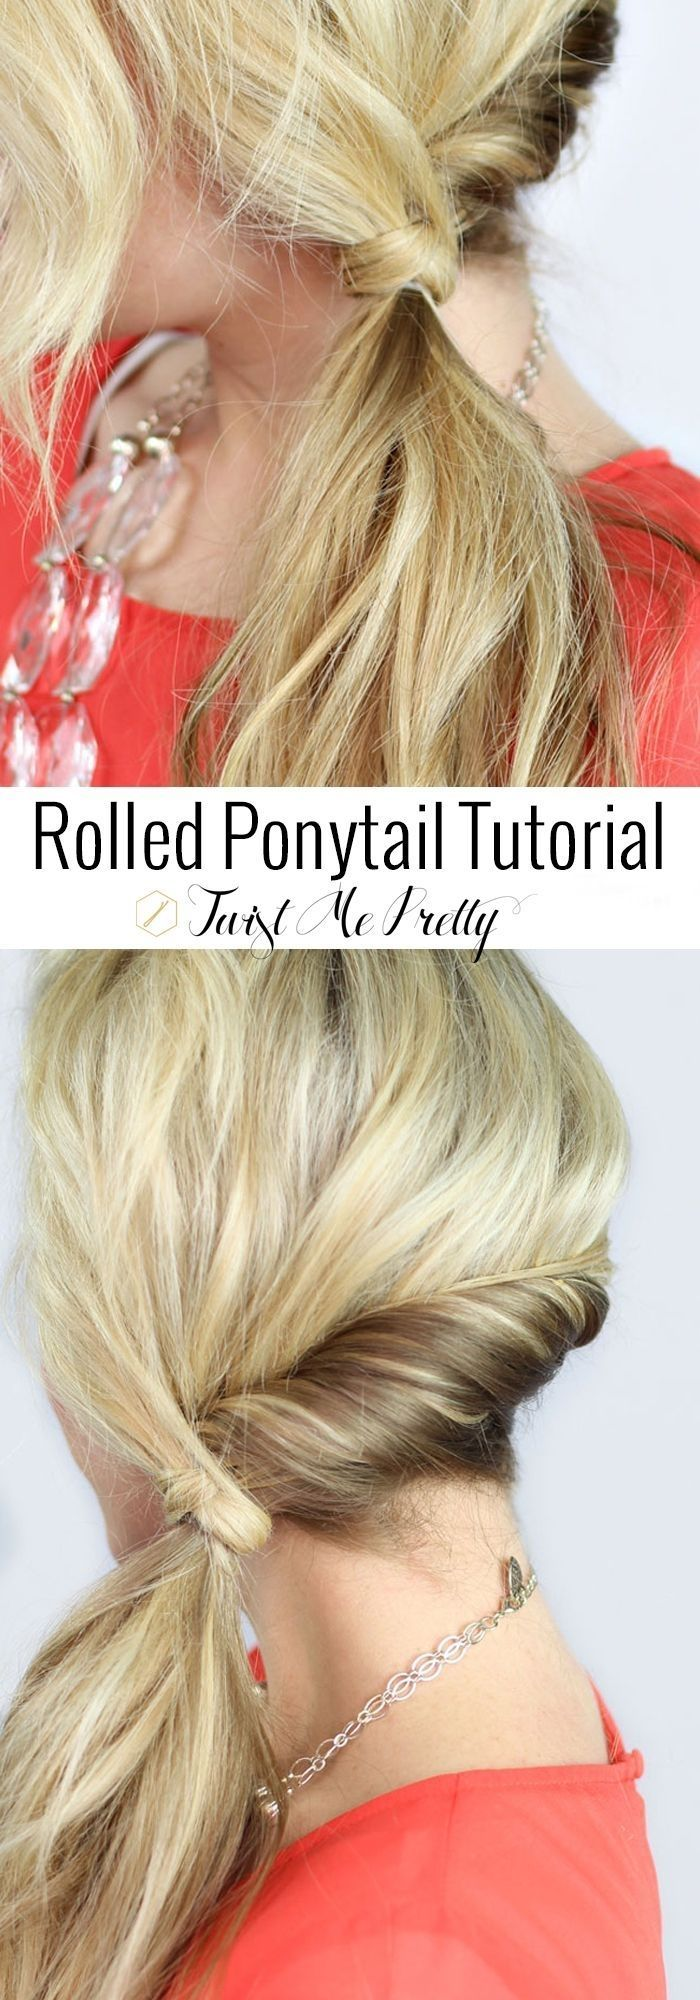 Easy side ponytails and cute hairstyles for long hair Überprüfen sie